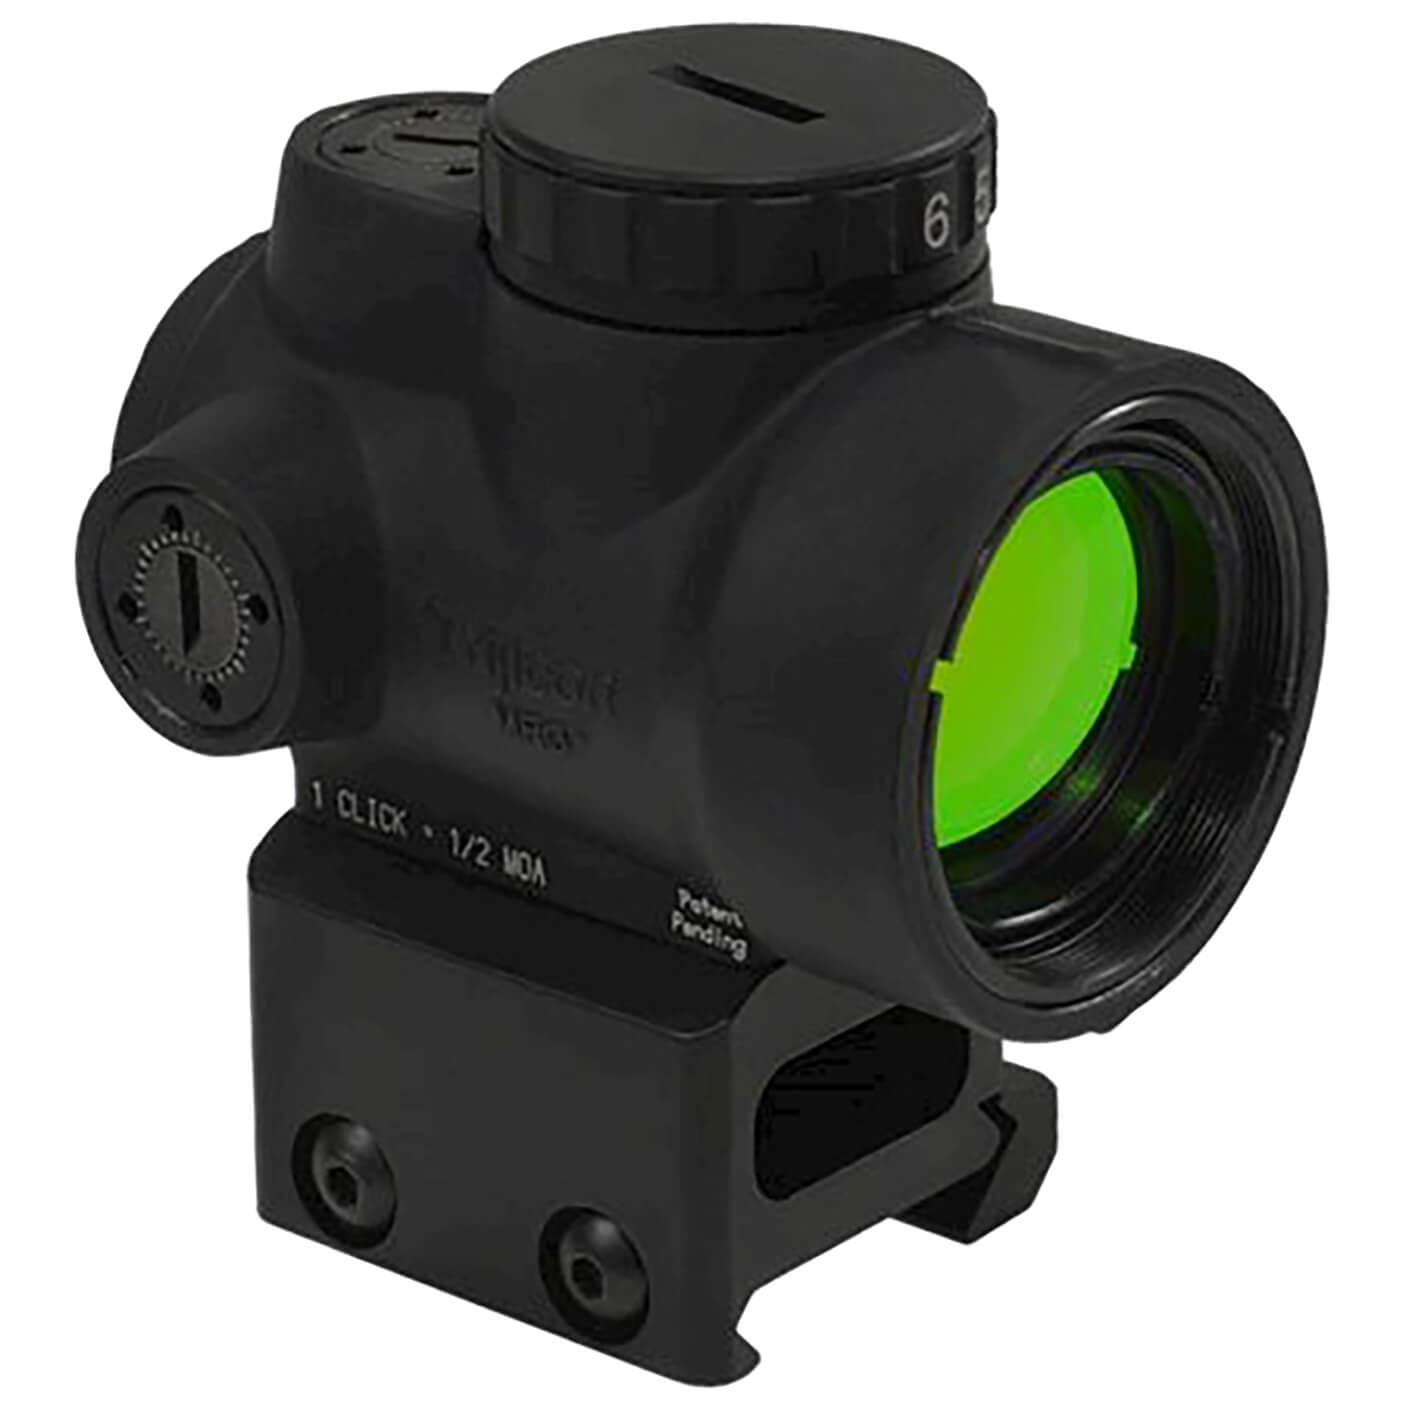 Picture for category Non-Magnified Optics